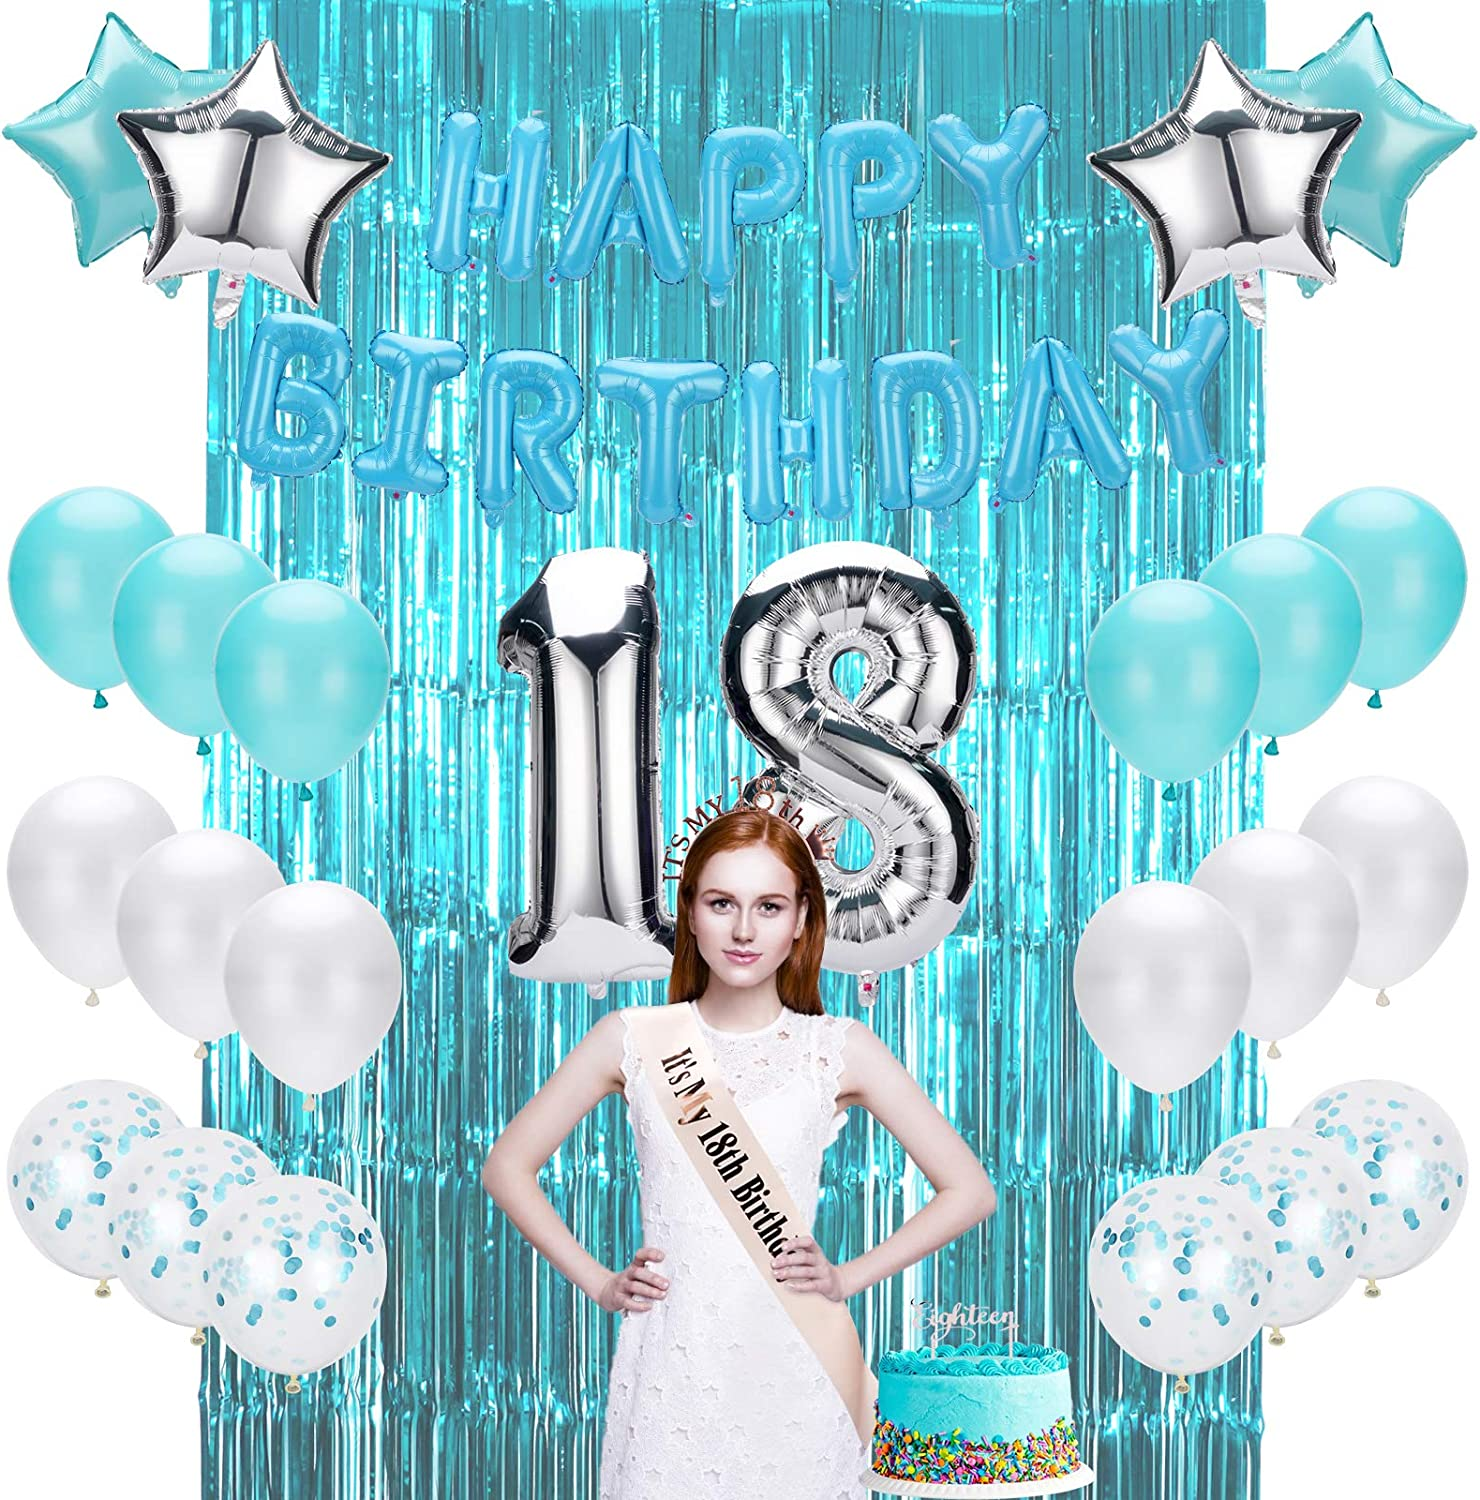 18th Birthday Decorations for Girls Number 18 Foil Balloon Cake Topper Banner Confetti Balloons Fringe Curtain Happy 18th Birthday Decoration 18 Birthday Decorations|18th Birthday Gifts for Girls